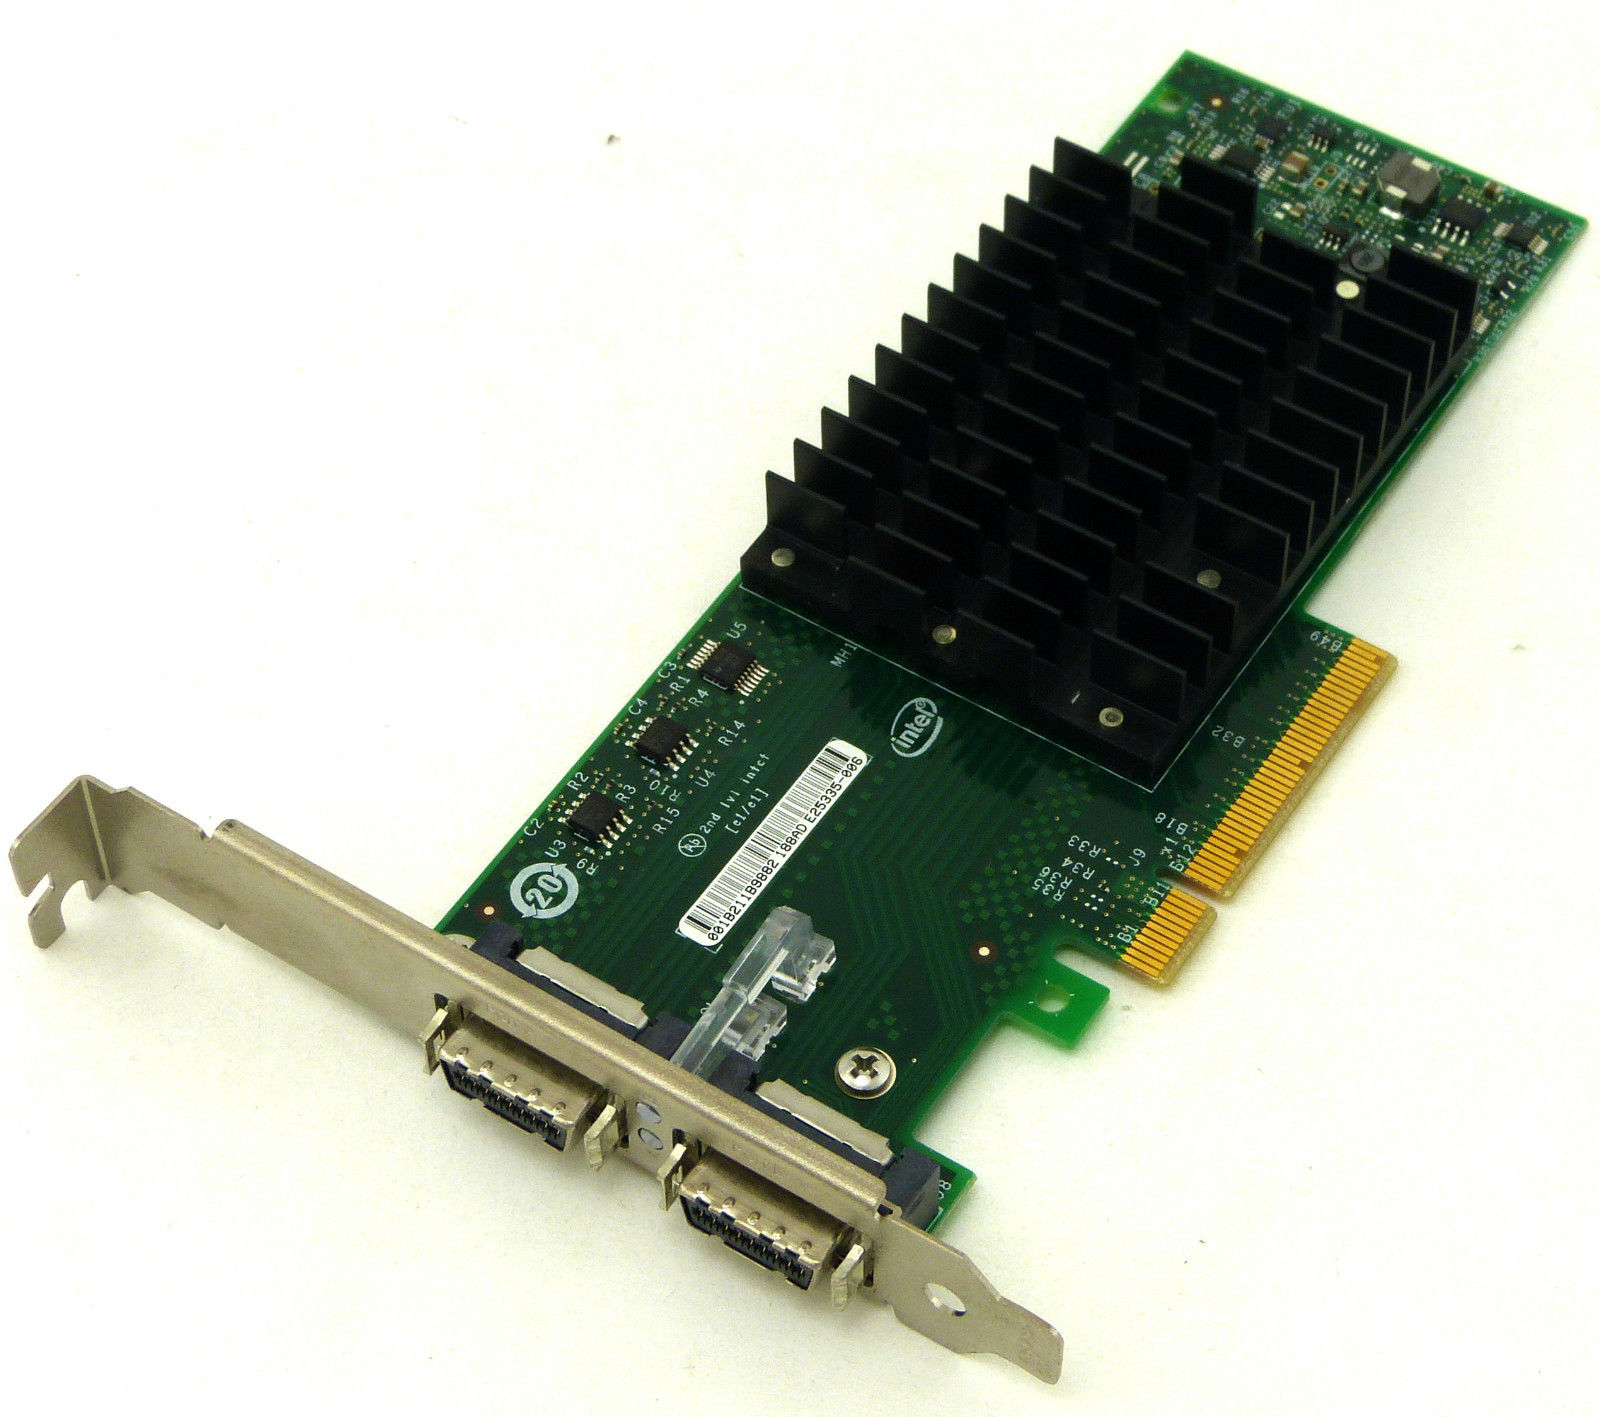 Intel EXPX9502CX4G1P5 EXPX9502CX4 10 Gigabit CX4 Dual Port Server Adapter